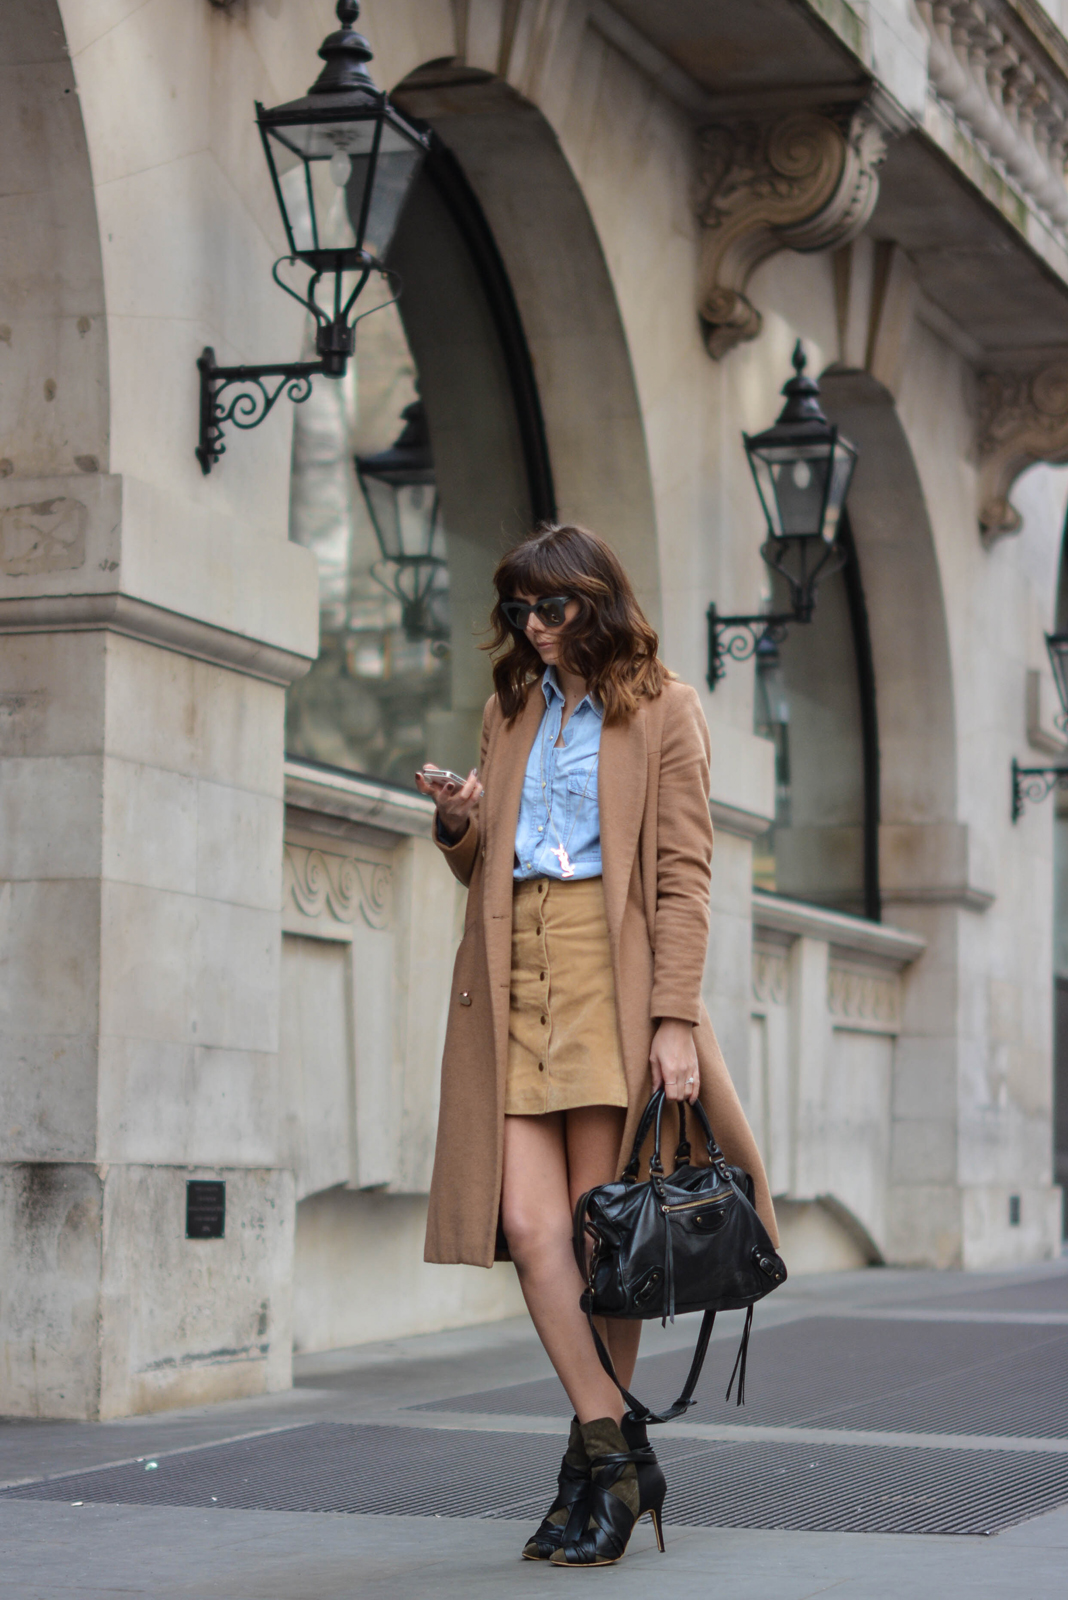 EJSTYLE - Emma Hill, Stella McCartney Sunglasses, denim shirt, camel coat, suede popper skirt miss selfridge, 70s style, Isabel Marant boots, street style, OOTD, fashion blogger, SS15